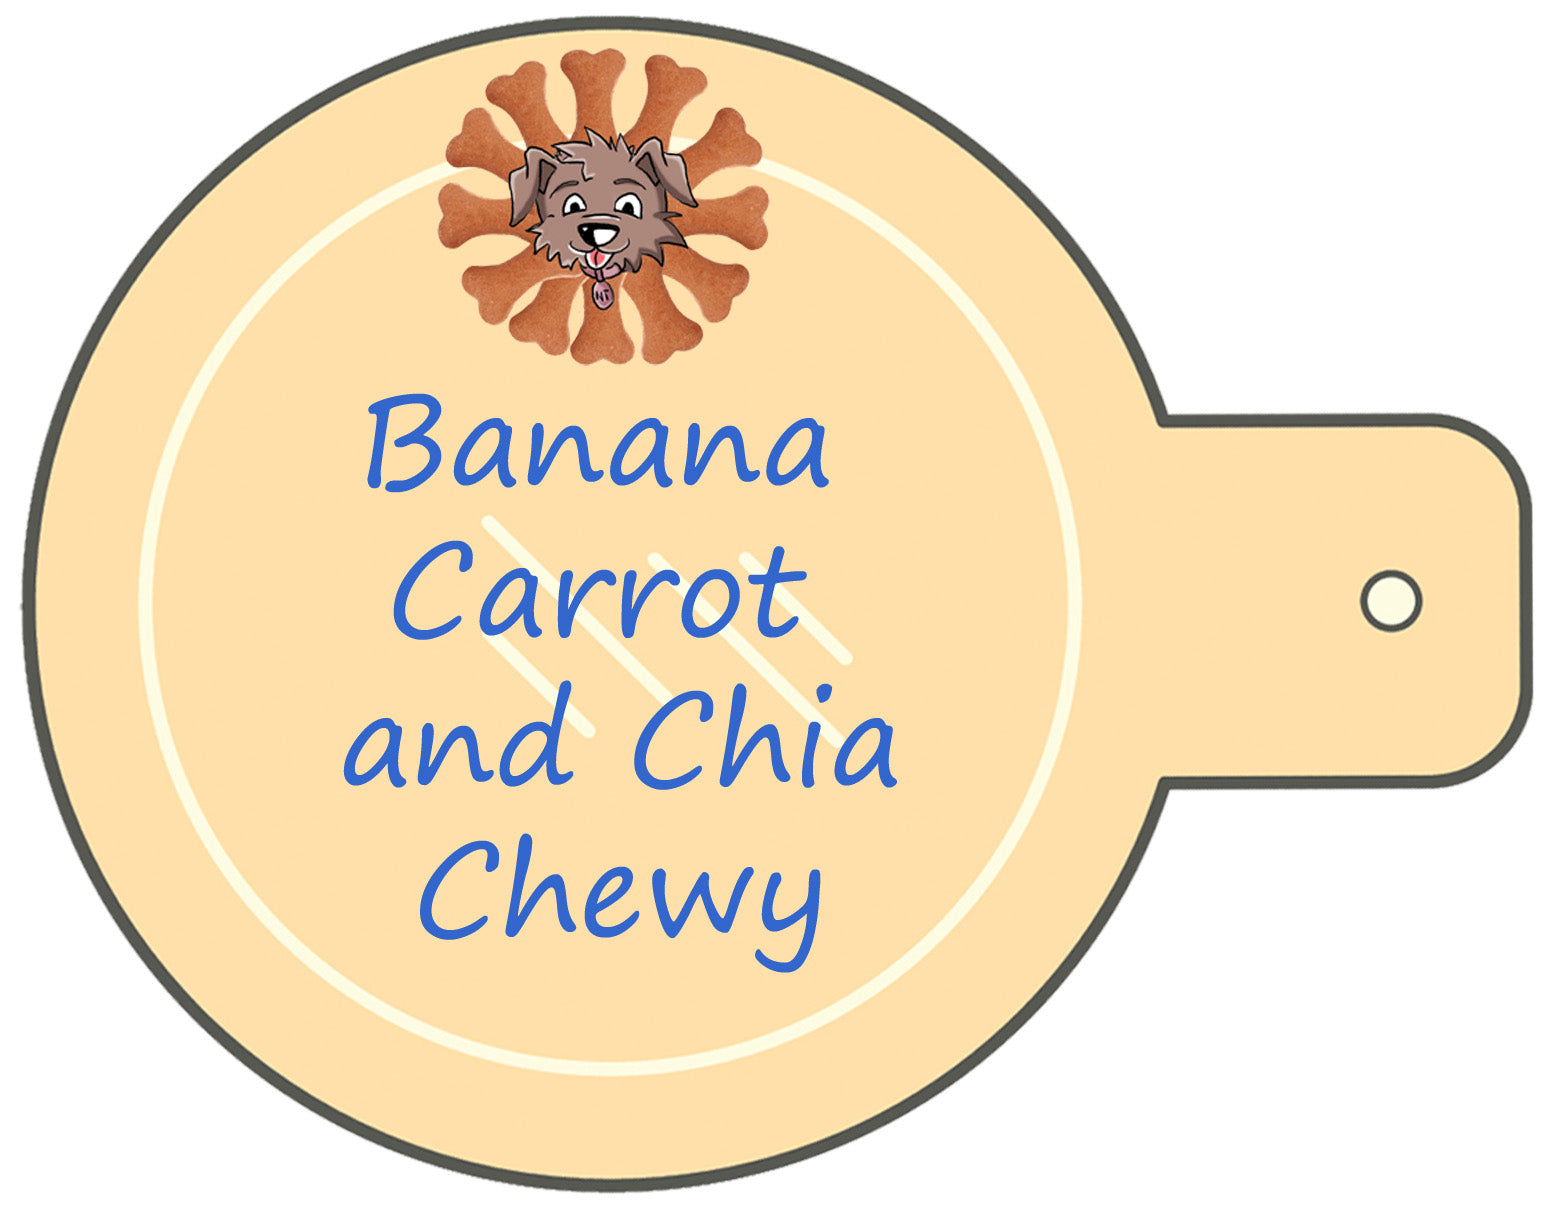 Banana Carrot and Chia Chewy